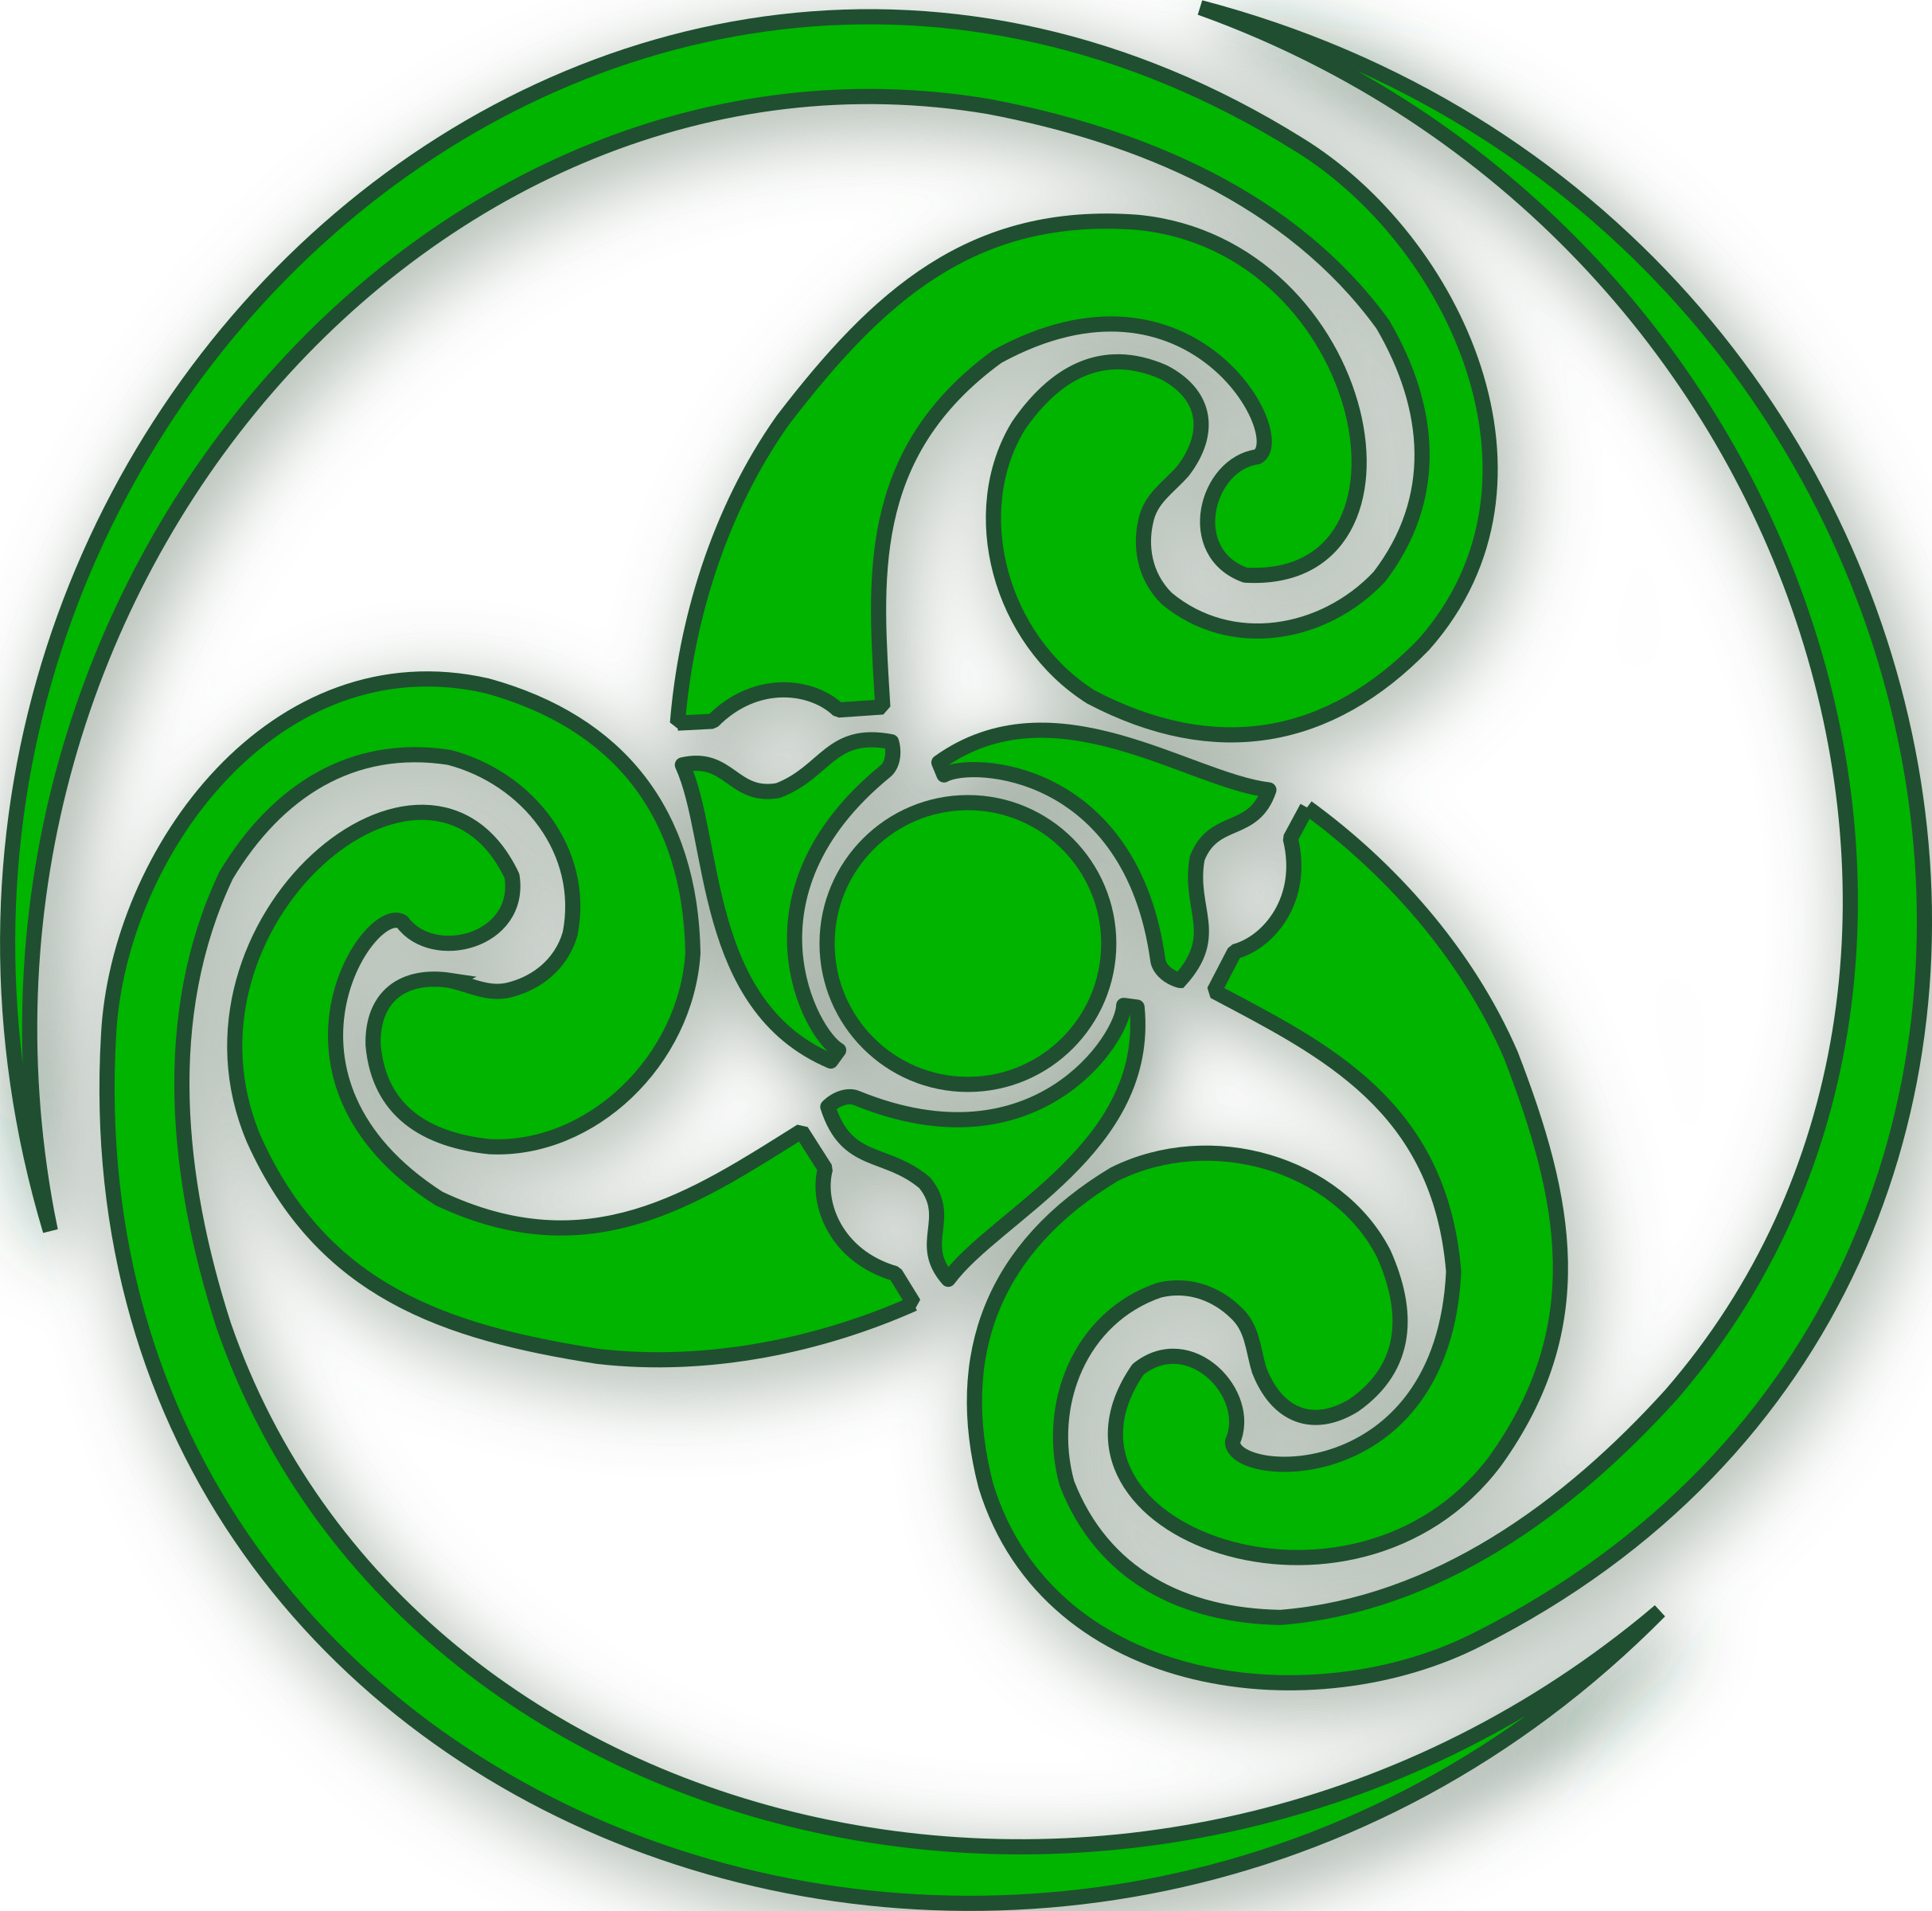 Celtic on computer symbols